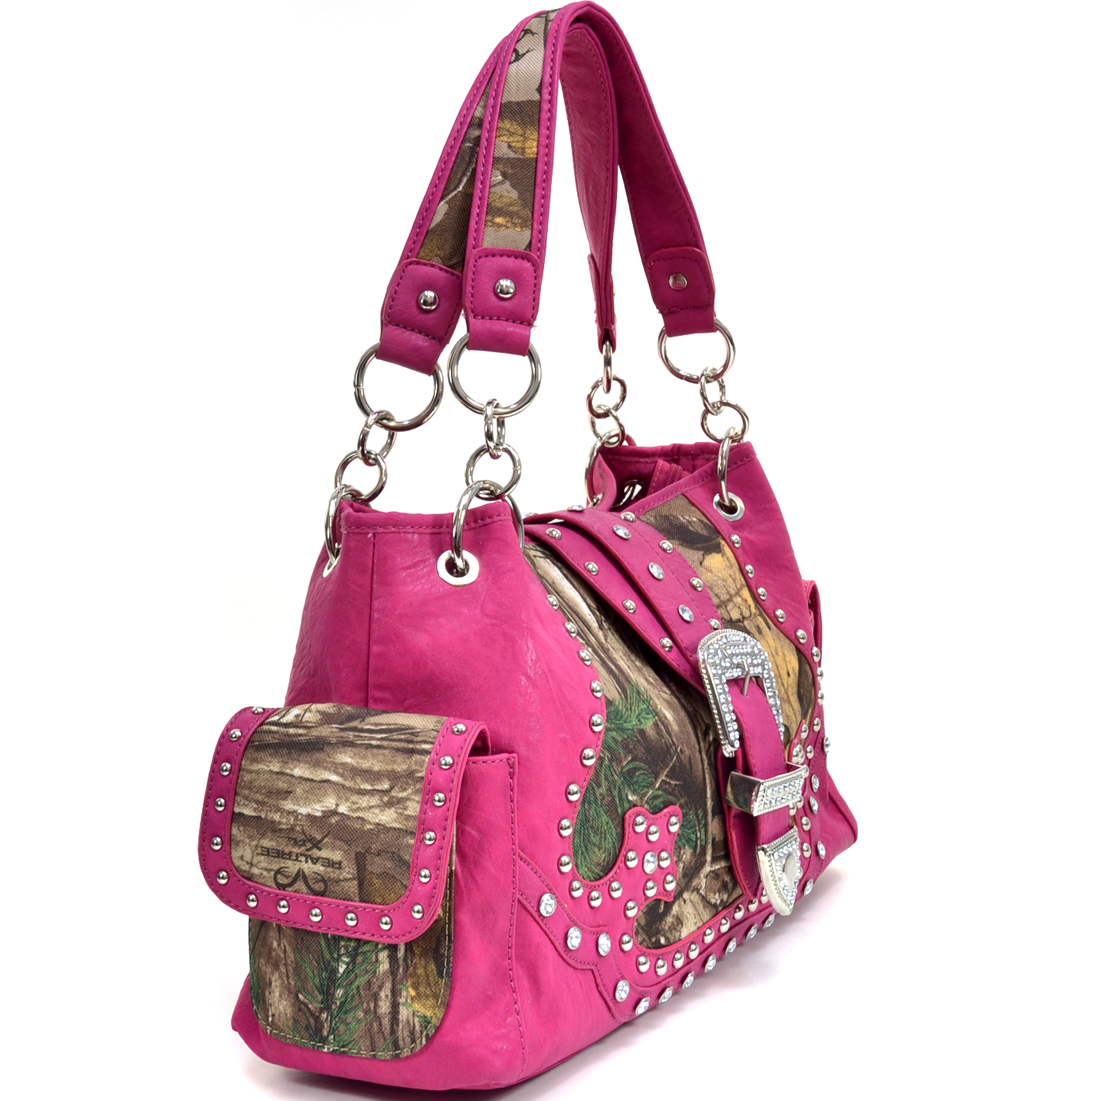 Dasein® Rhinestone Studded Buckle Accent Shoulder Bag in Realtree XTRA Camo Print -Fuchsia Trim